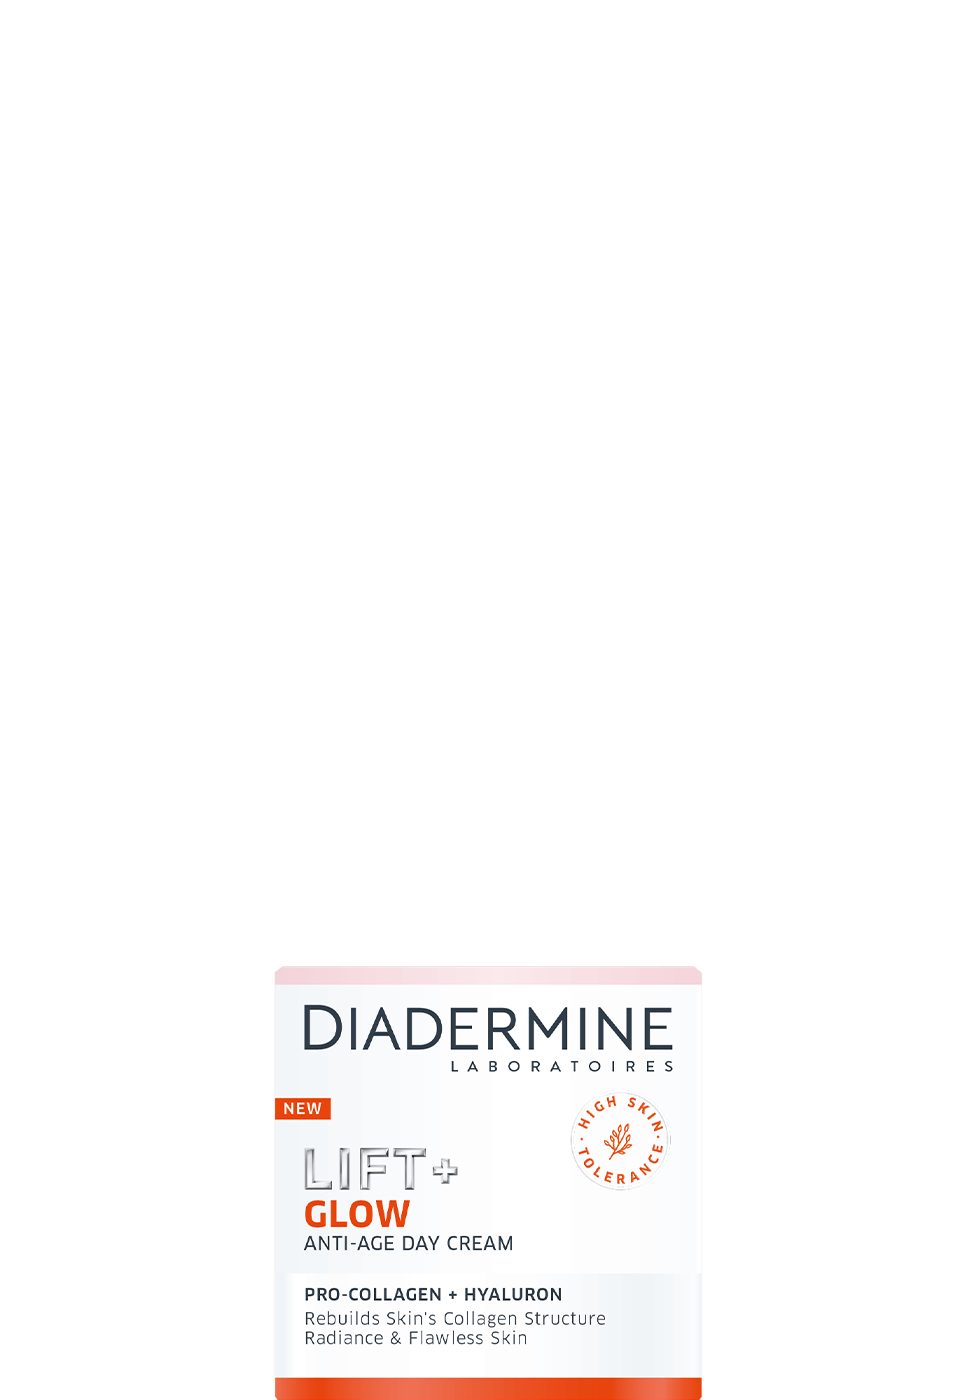 diadermine_com_lift_plus_glow-lifting_day_cream_970x1400